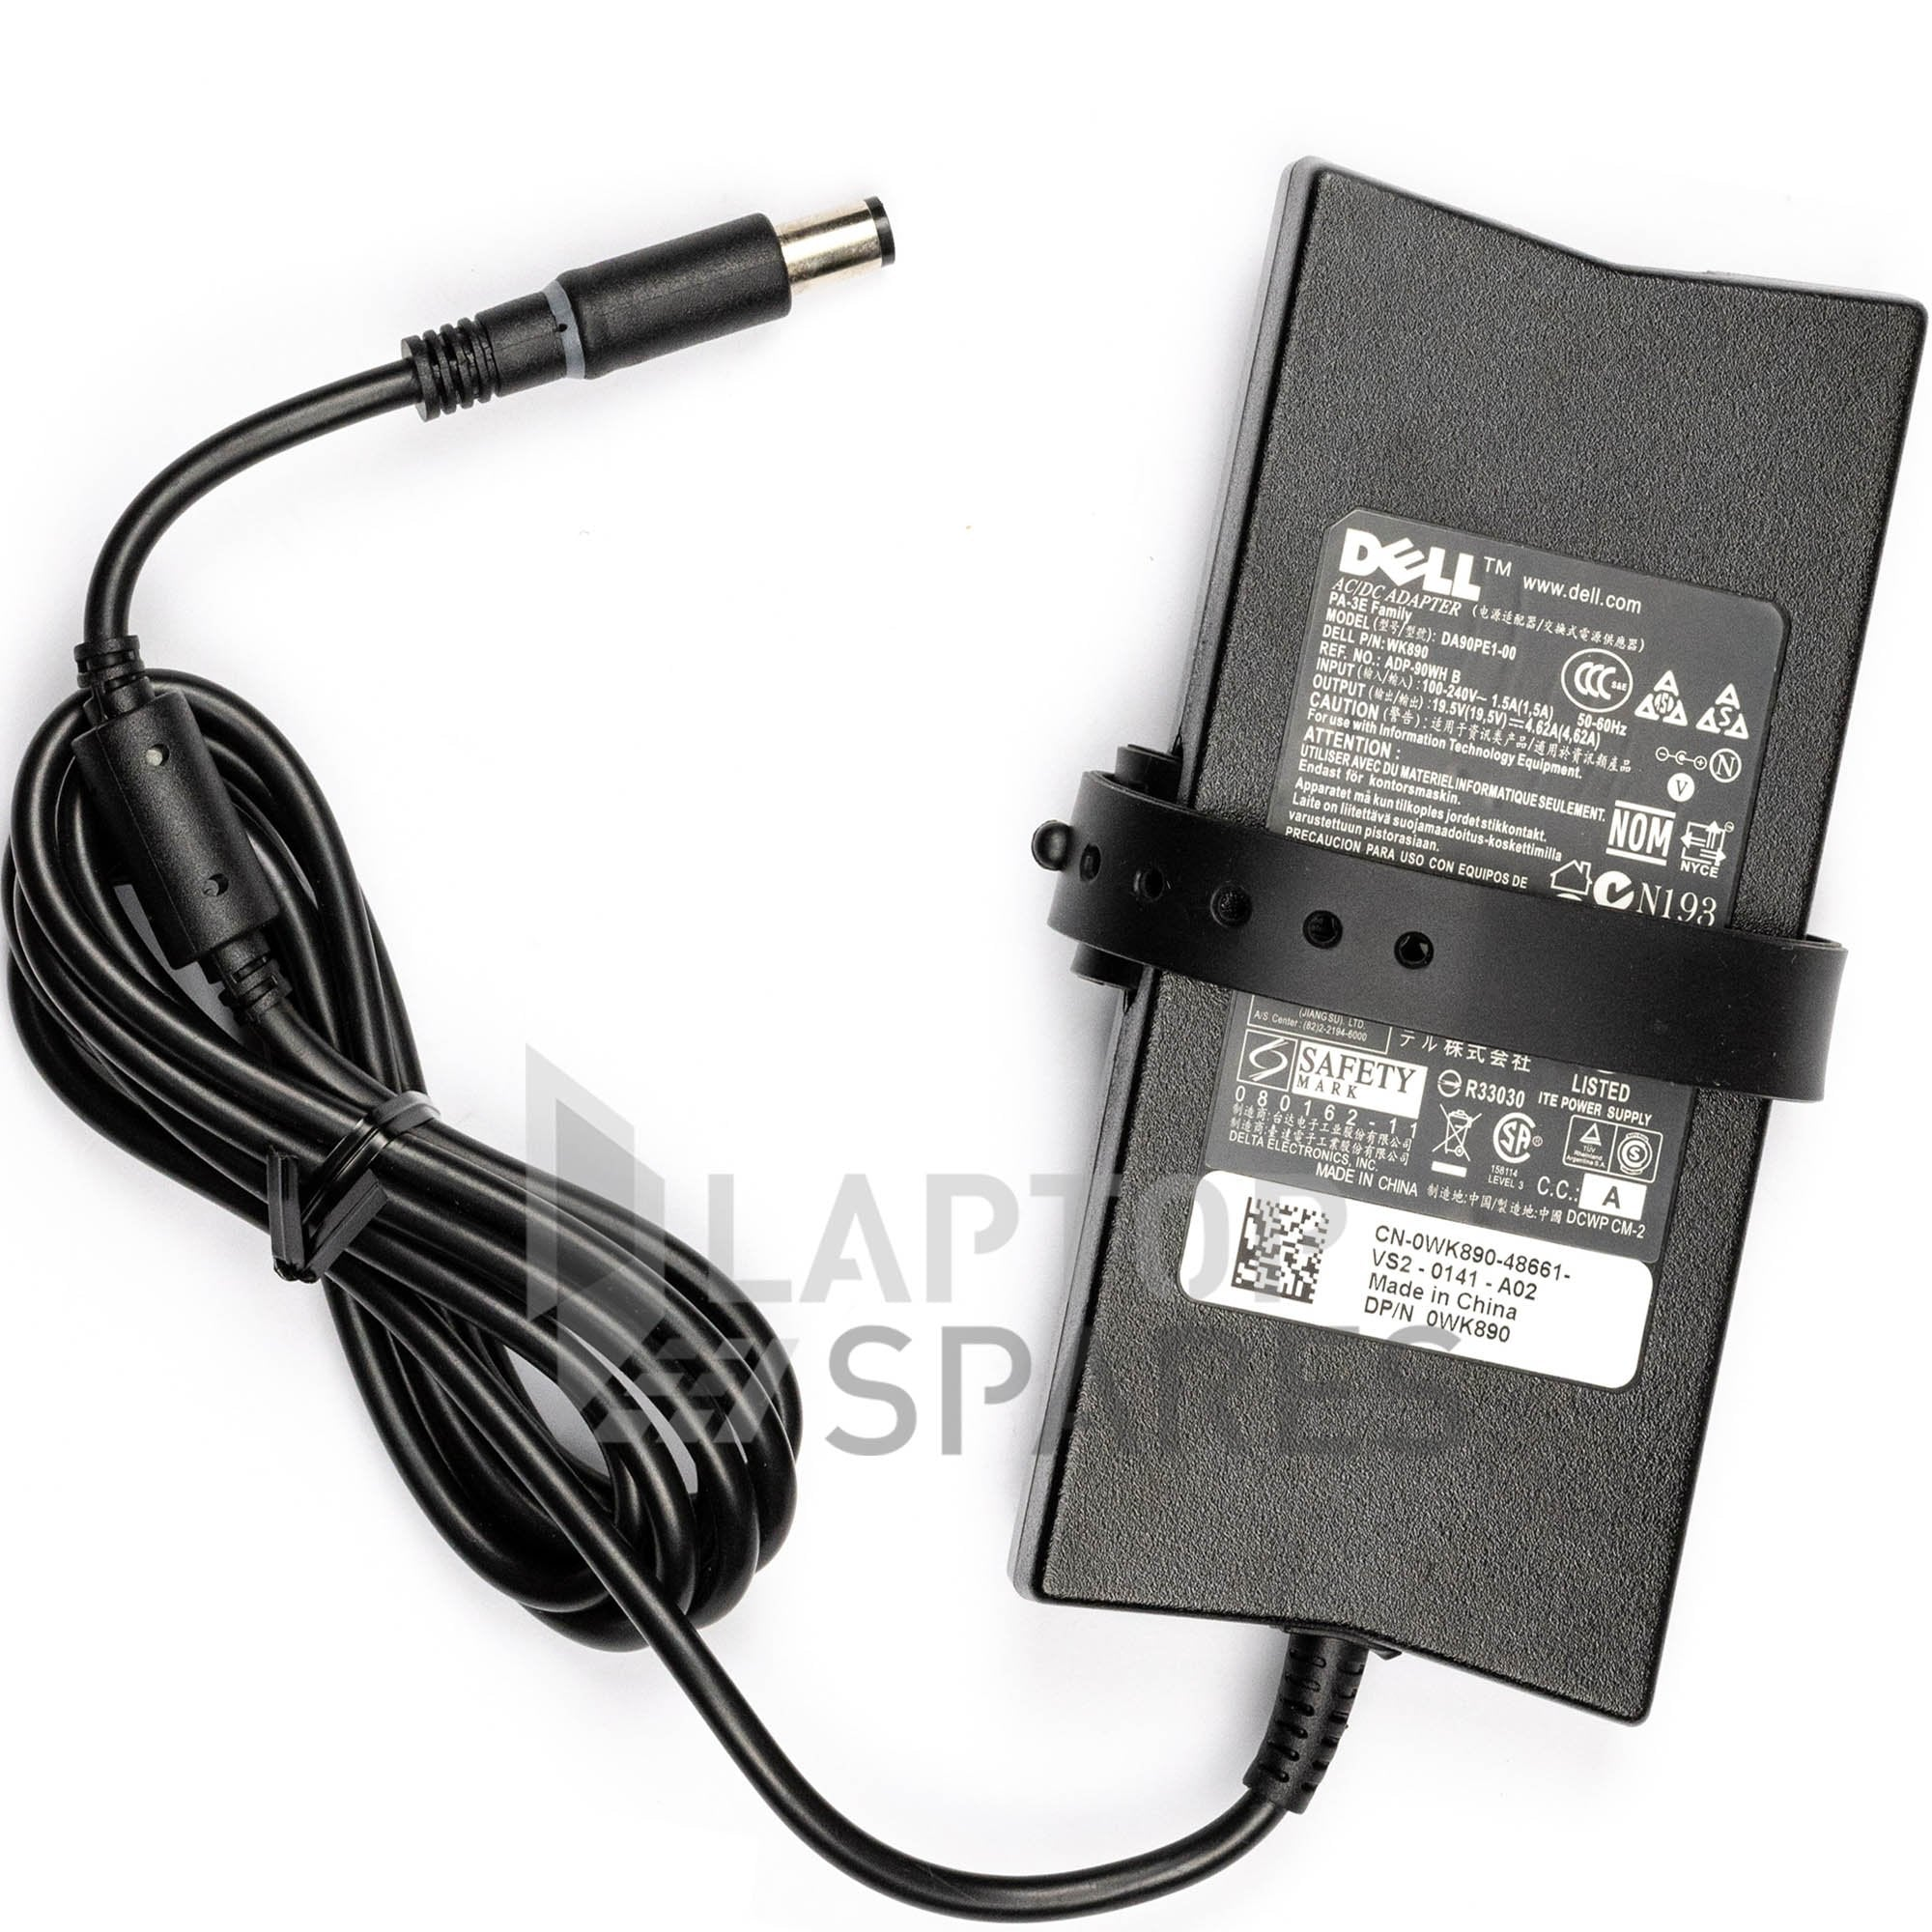 Dell Studio XPS 9100 Laptop Slim AC Adapter Charger